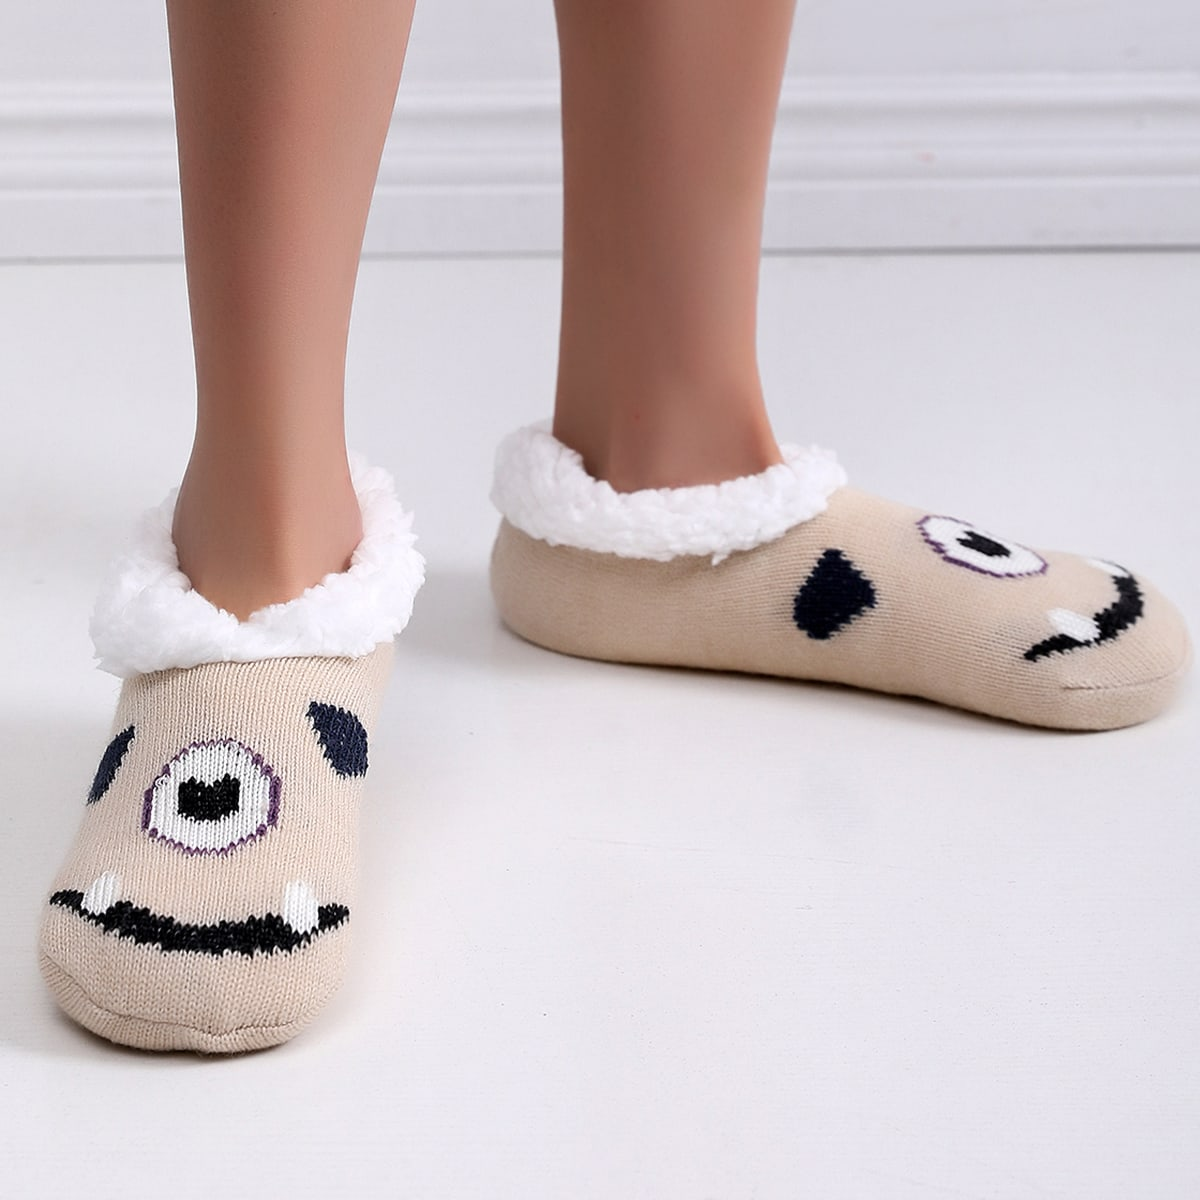 shein Preppy Spotprent Slipper